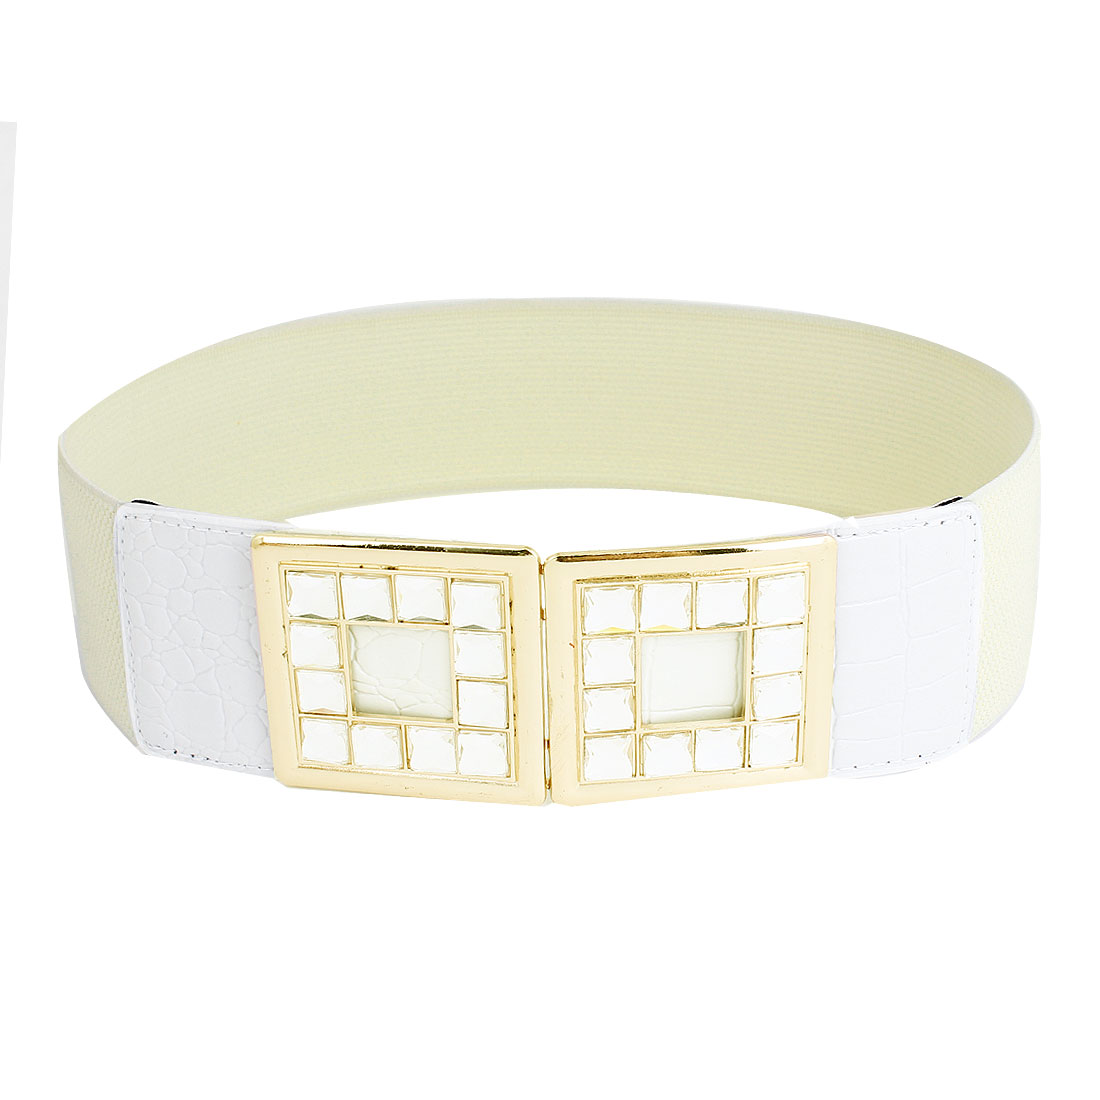 Crystals Detail Interlocking Buckle 6cm Width Cinch Waist Belt Ivory for Women